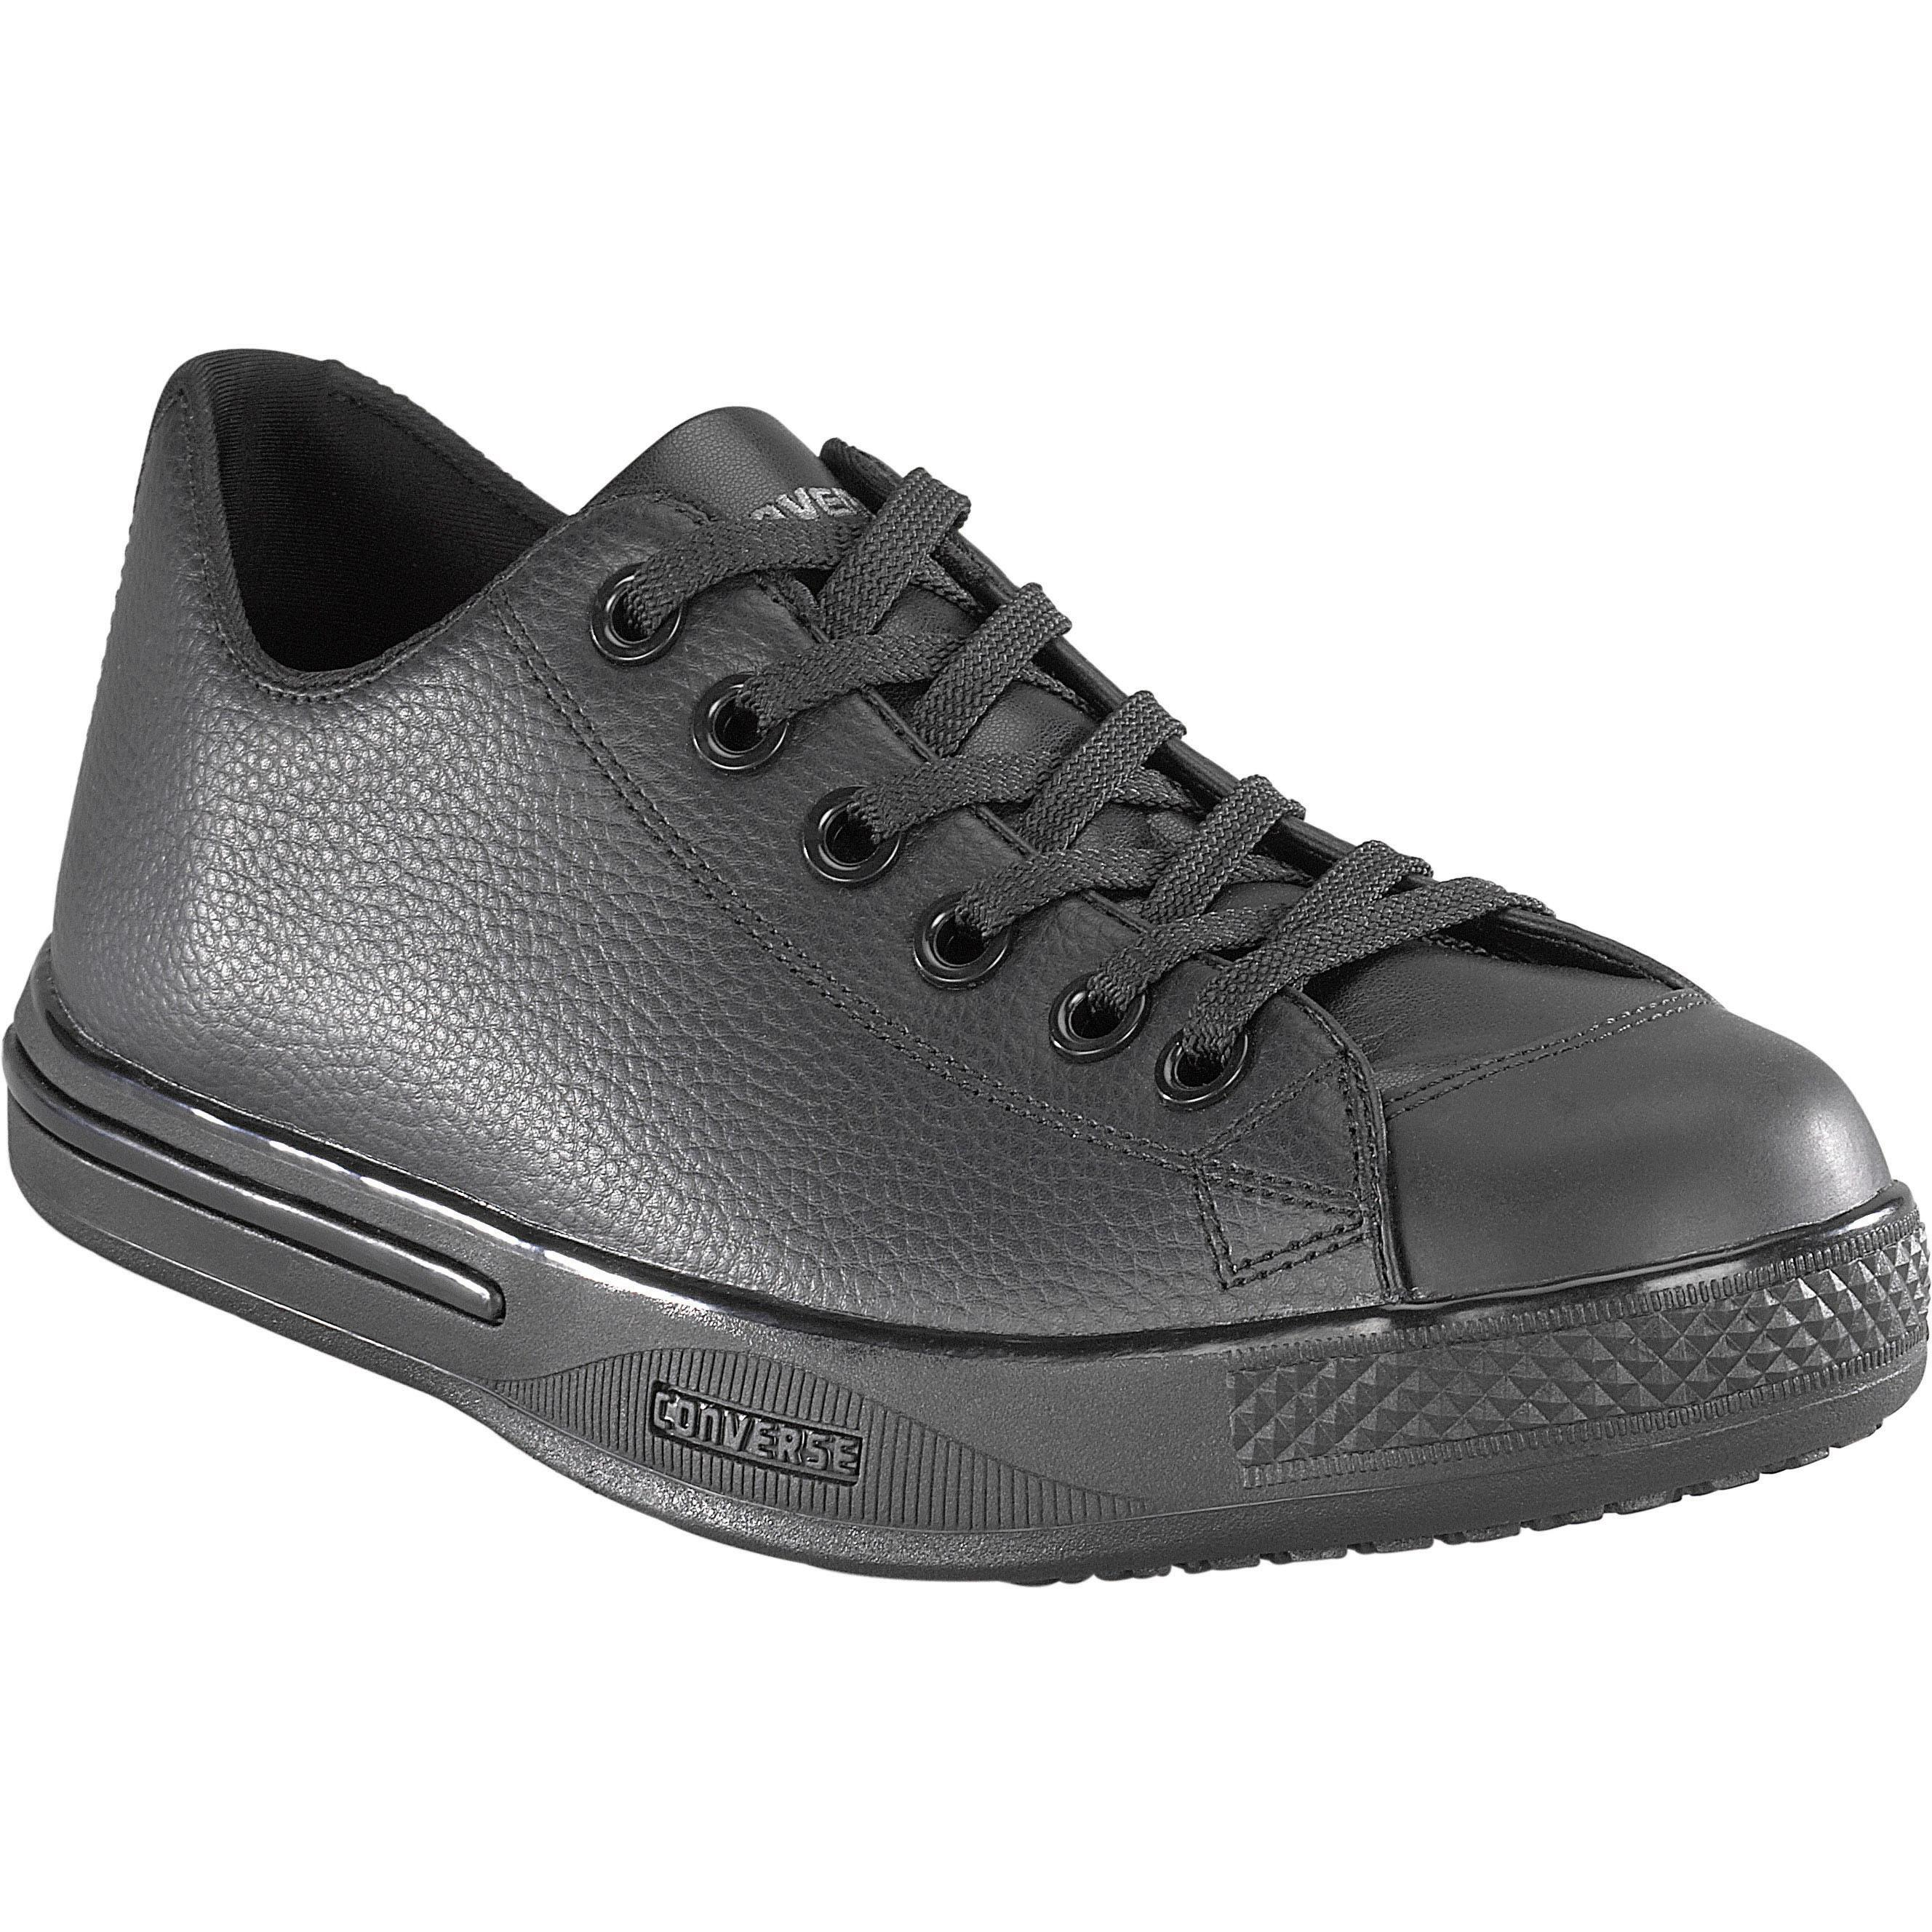 Converse Women S Slip Resistant Oxford Lehigh Safety Shoes